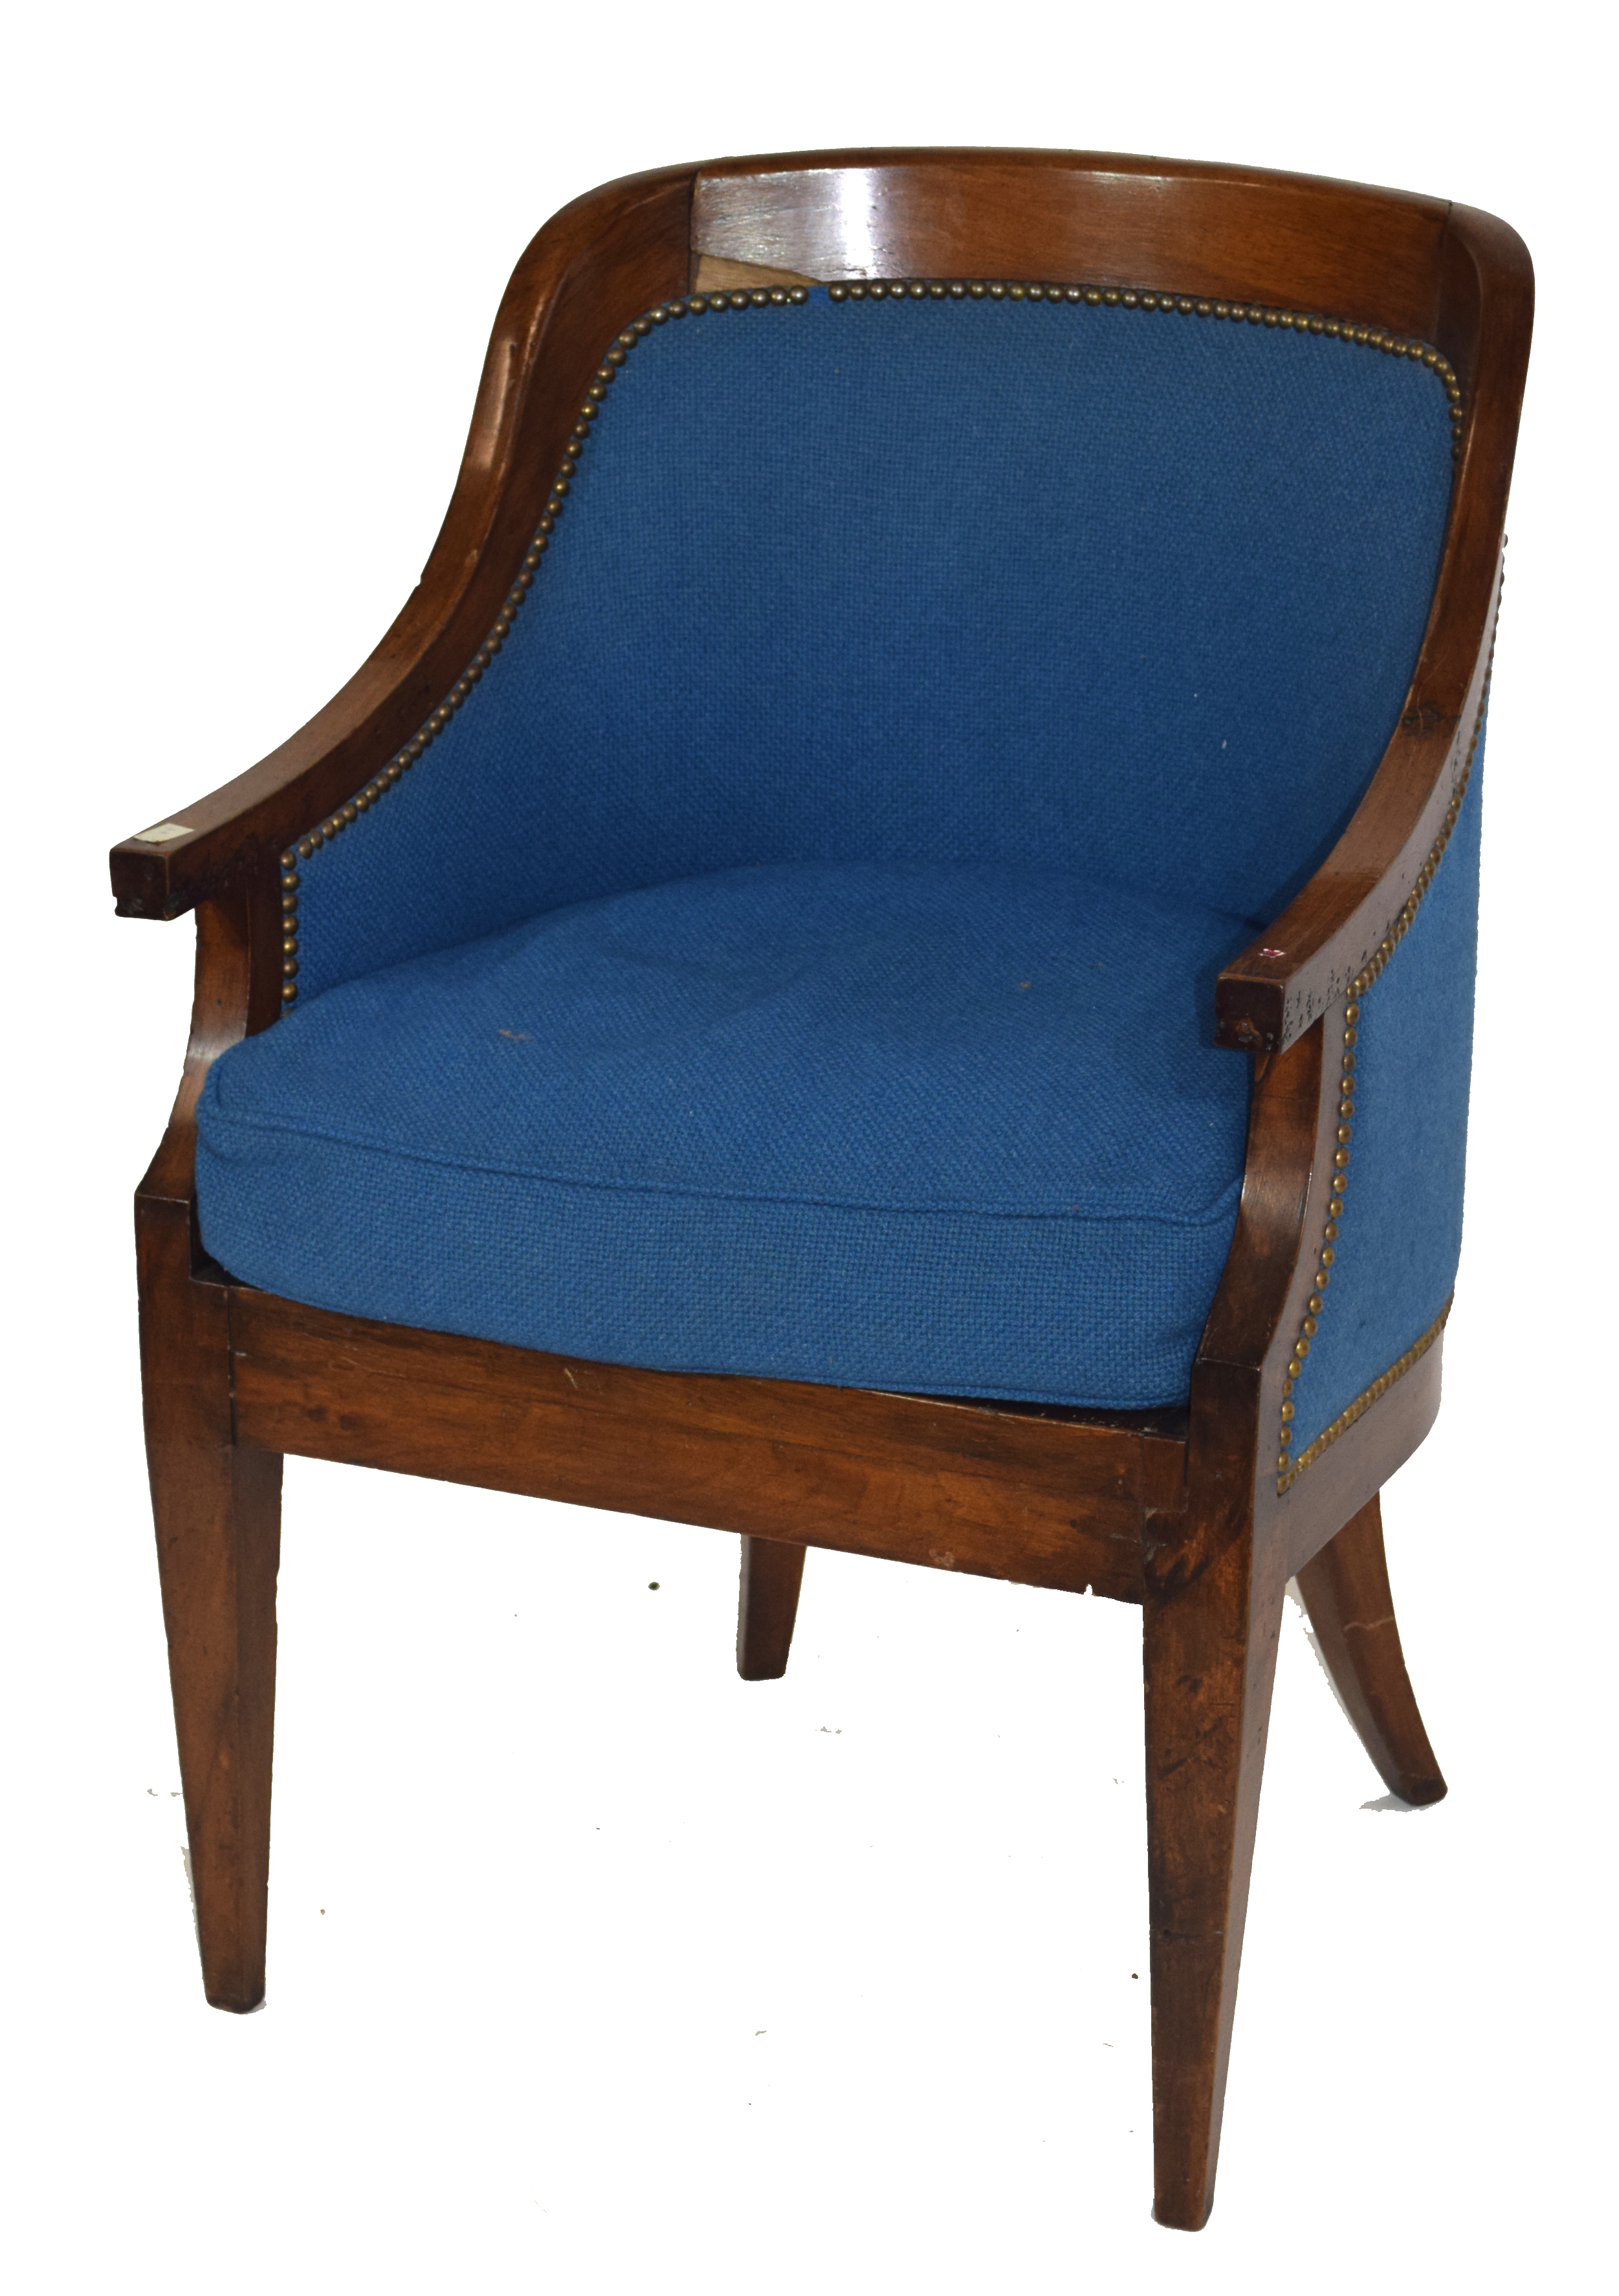 Late 19th/early 20th century mahogany framed tub chair with blue upholstery, 58cm wide Condition: - Image 2 of 5